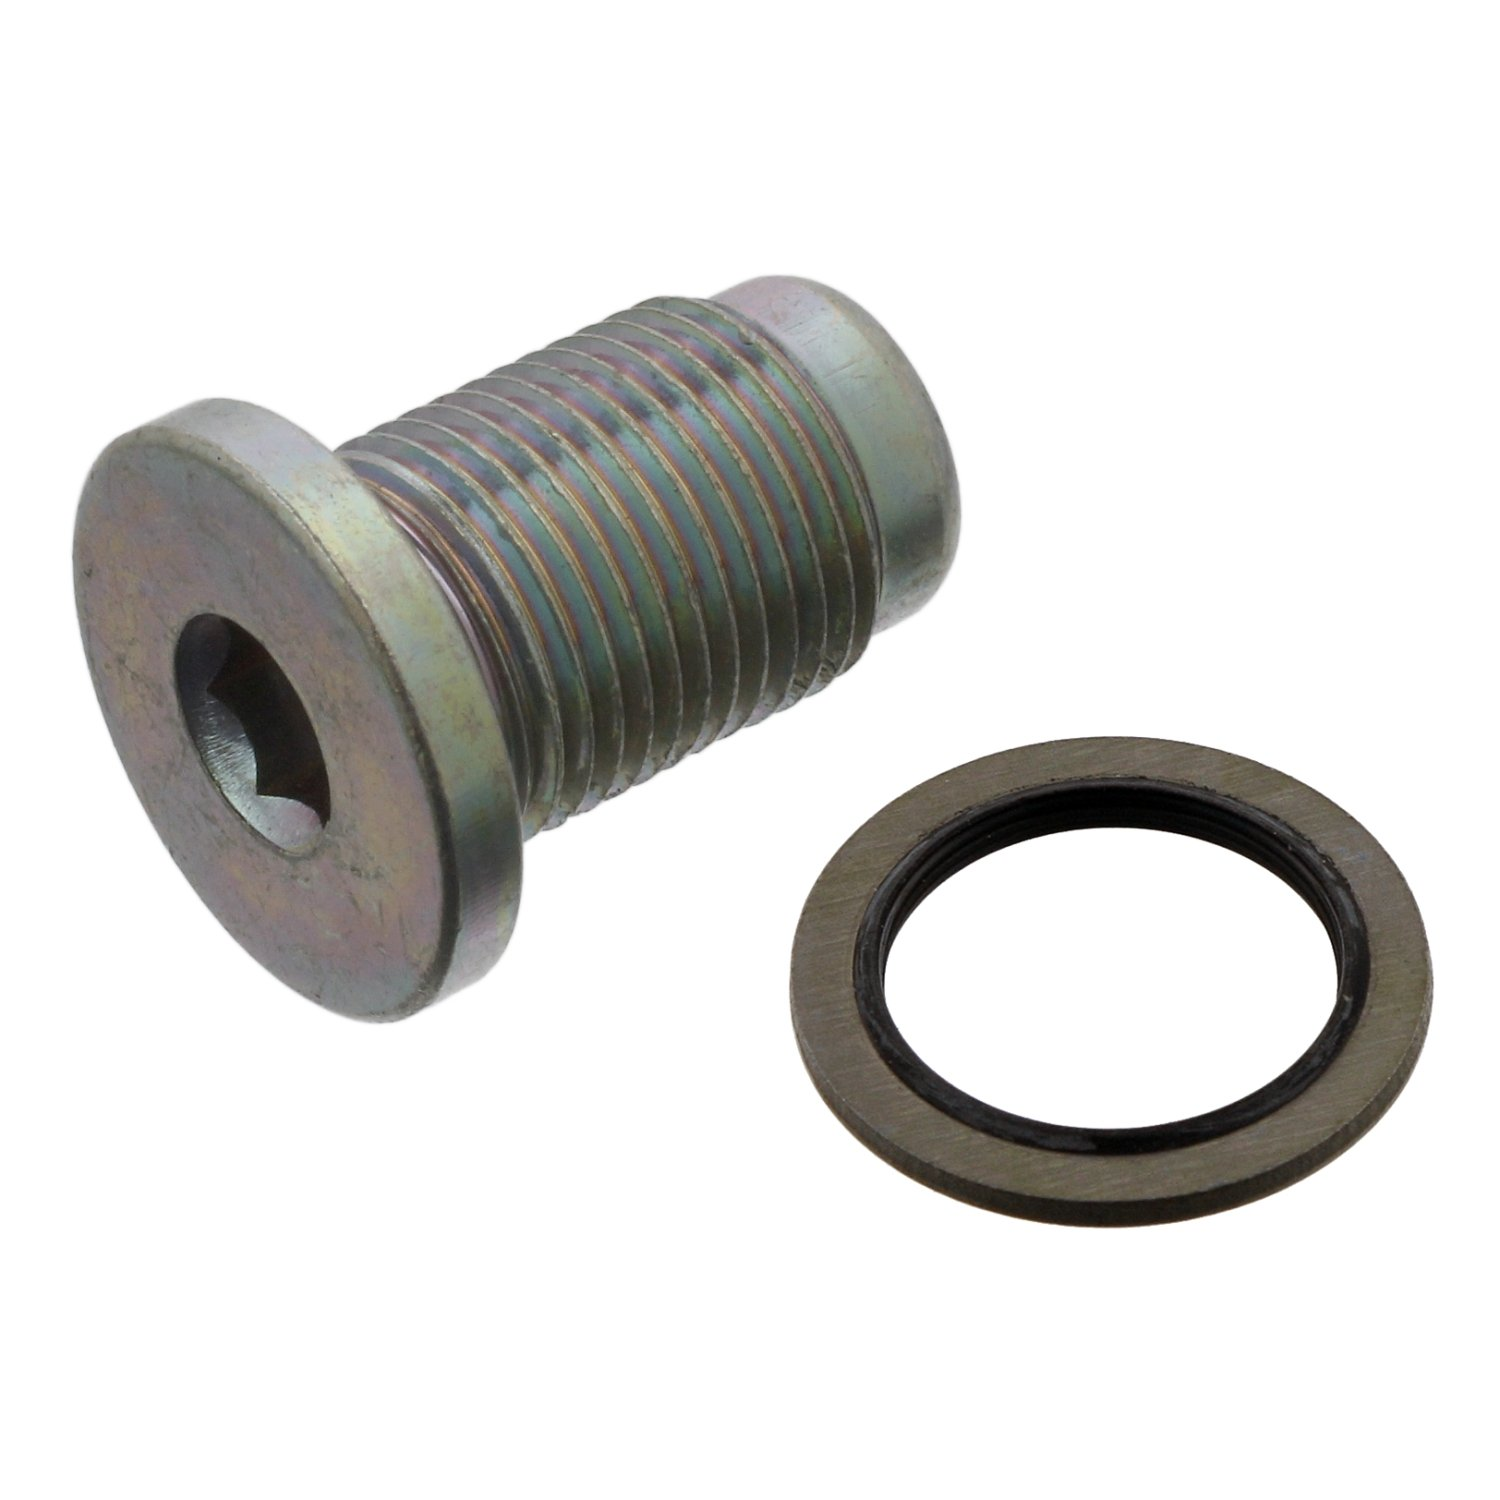 febi bilstein 30264 Oil Drain Plug with seal ring pack of one